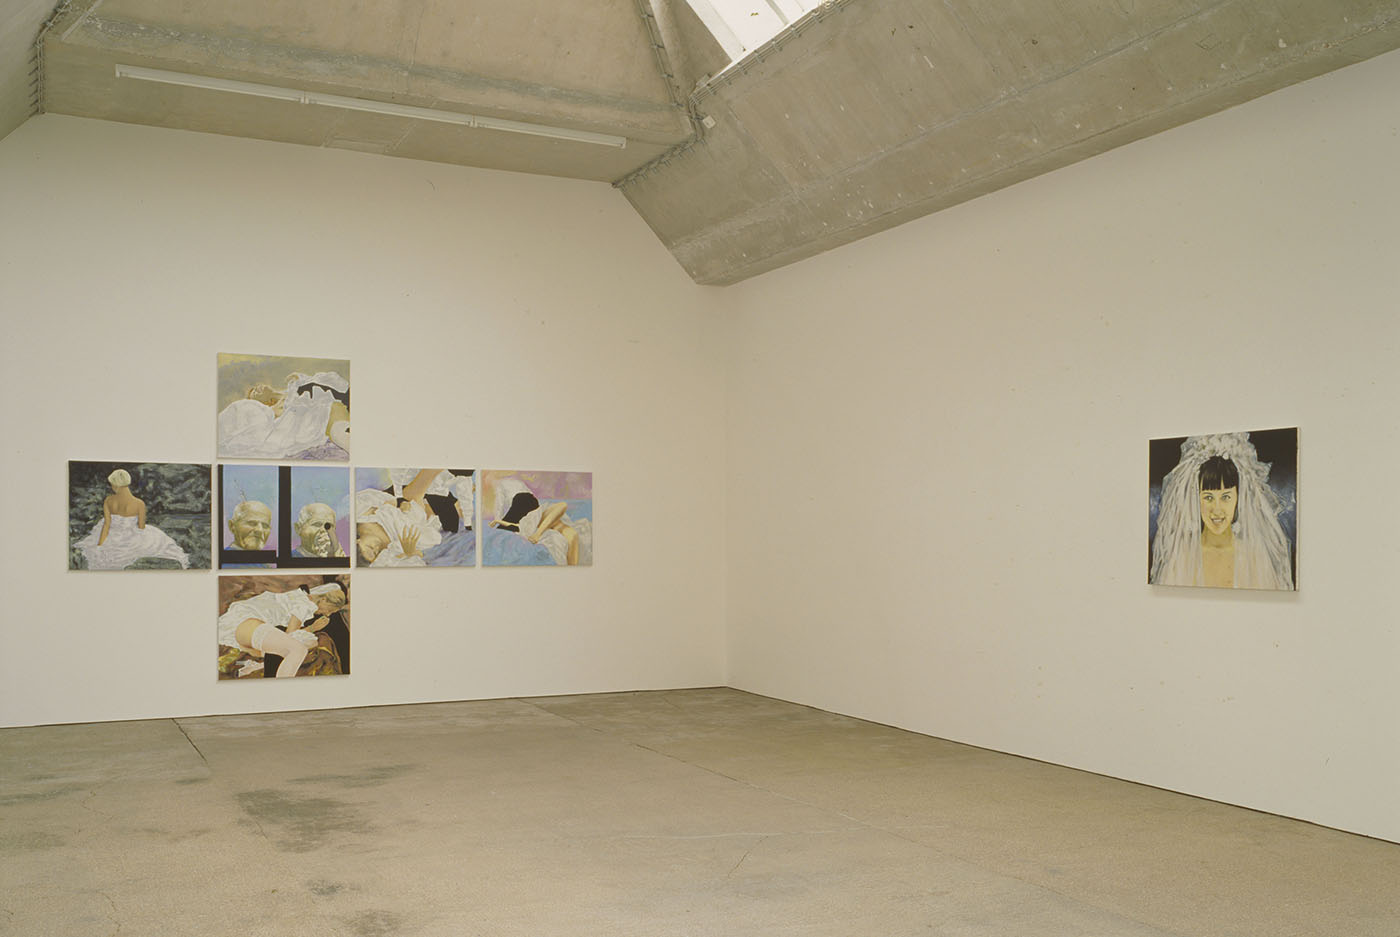 Bruno Perramant - Exhibition view - History of abstraction, I Prologue, II The wedding, 2011